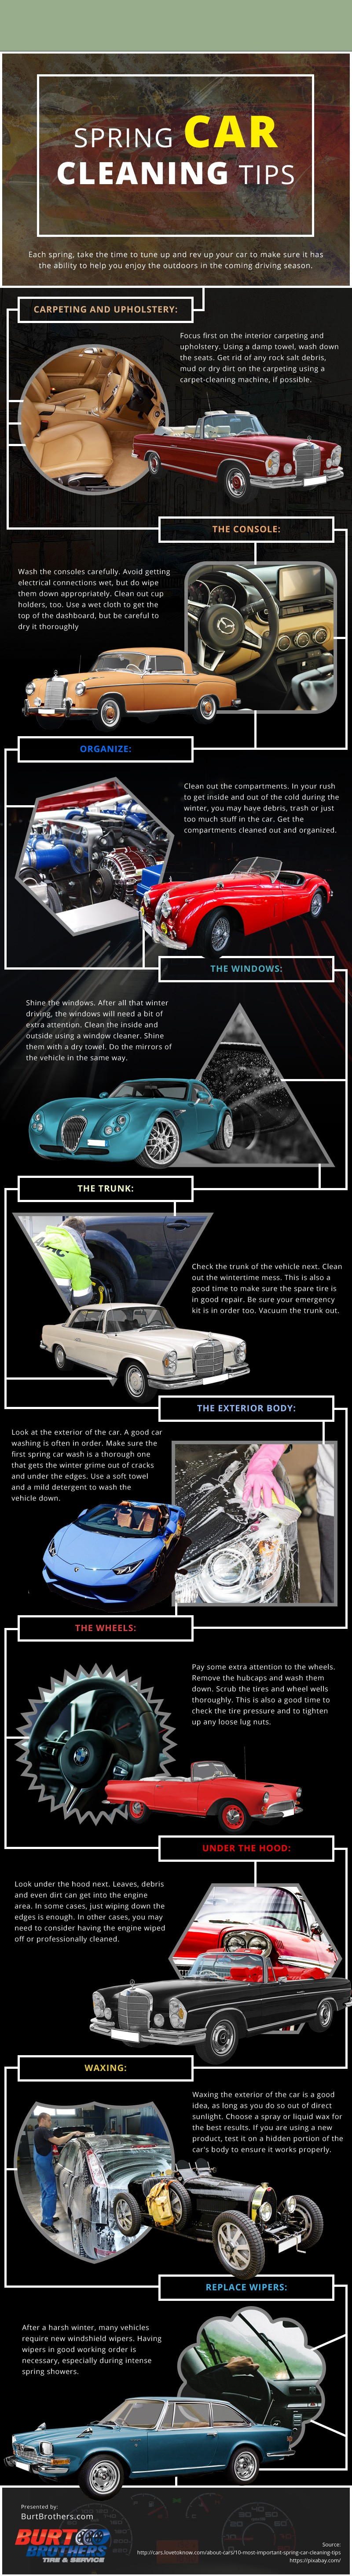 Spring-Car-Cleaning-Tips Infographic